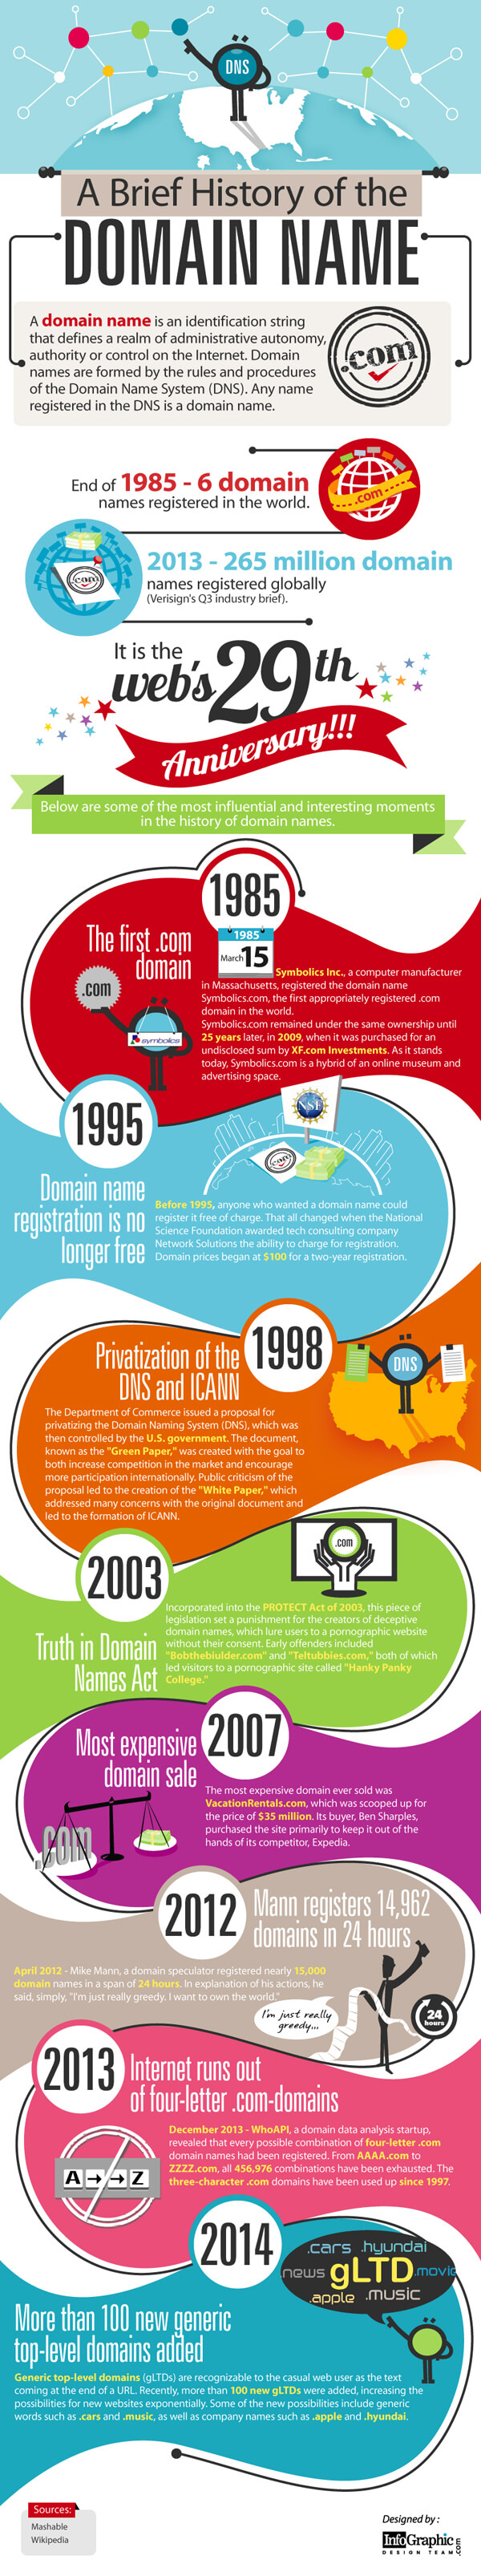 the-Webs-29th-Anniversary-Brief-History-infographic